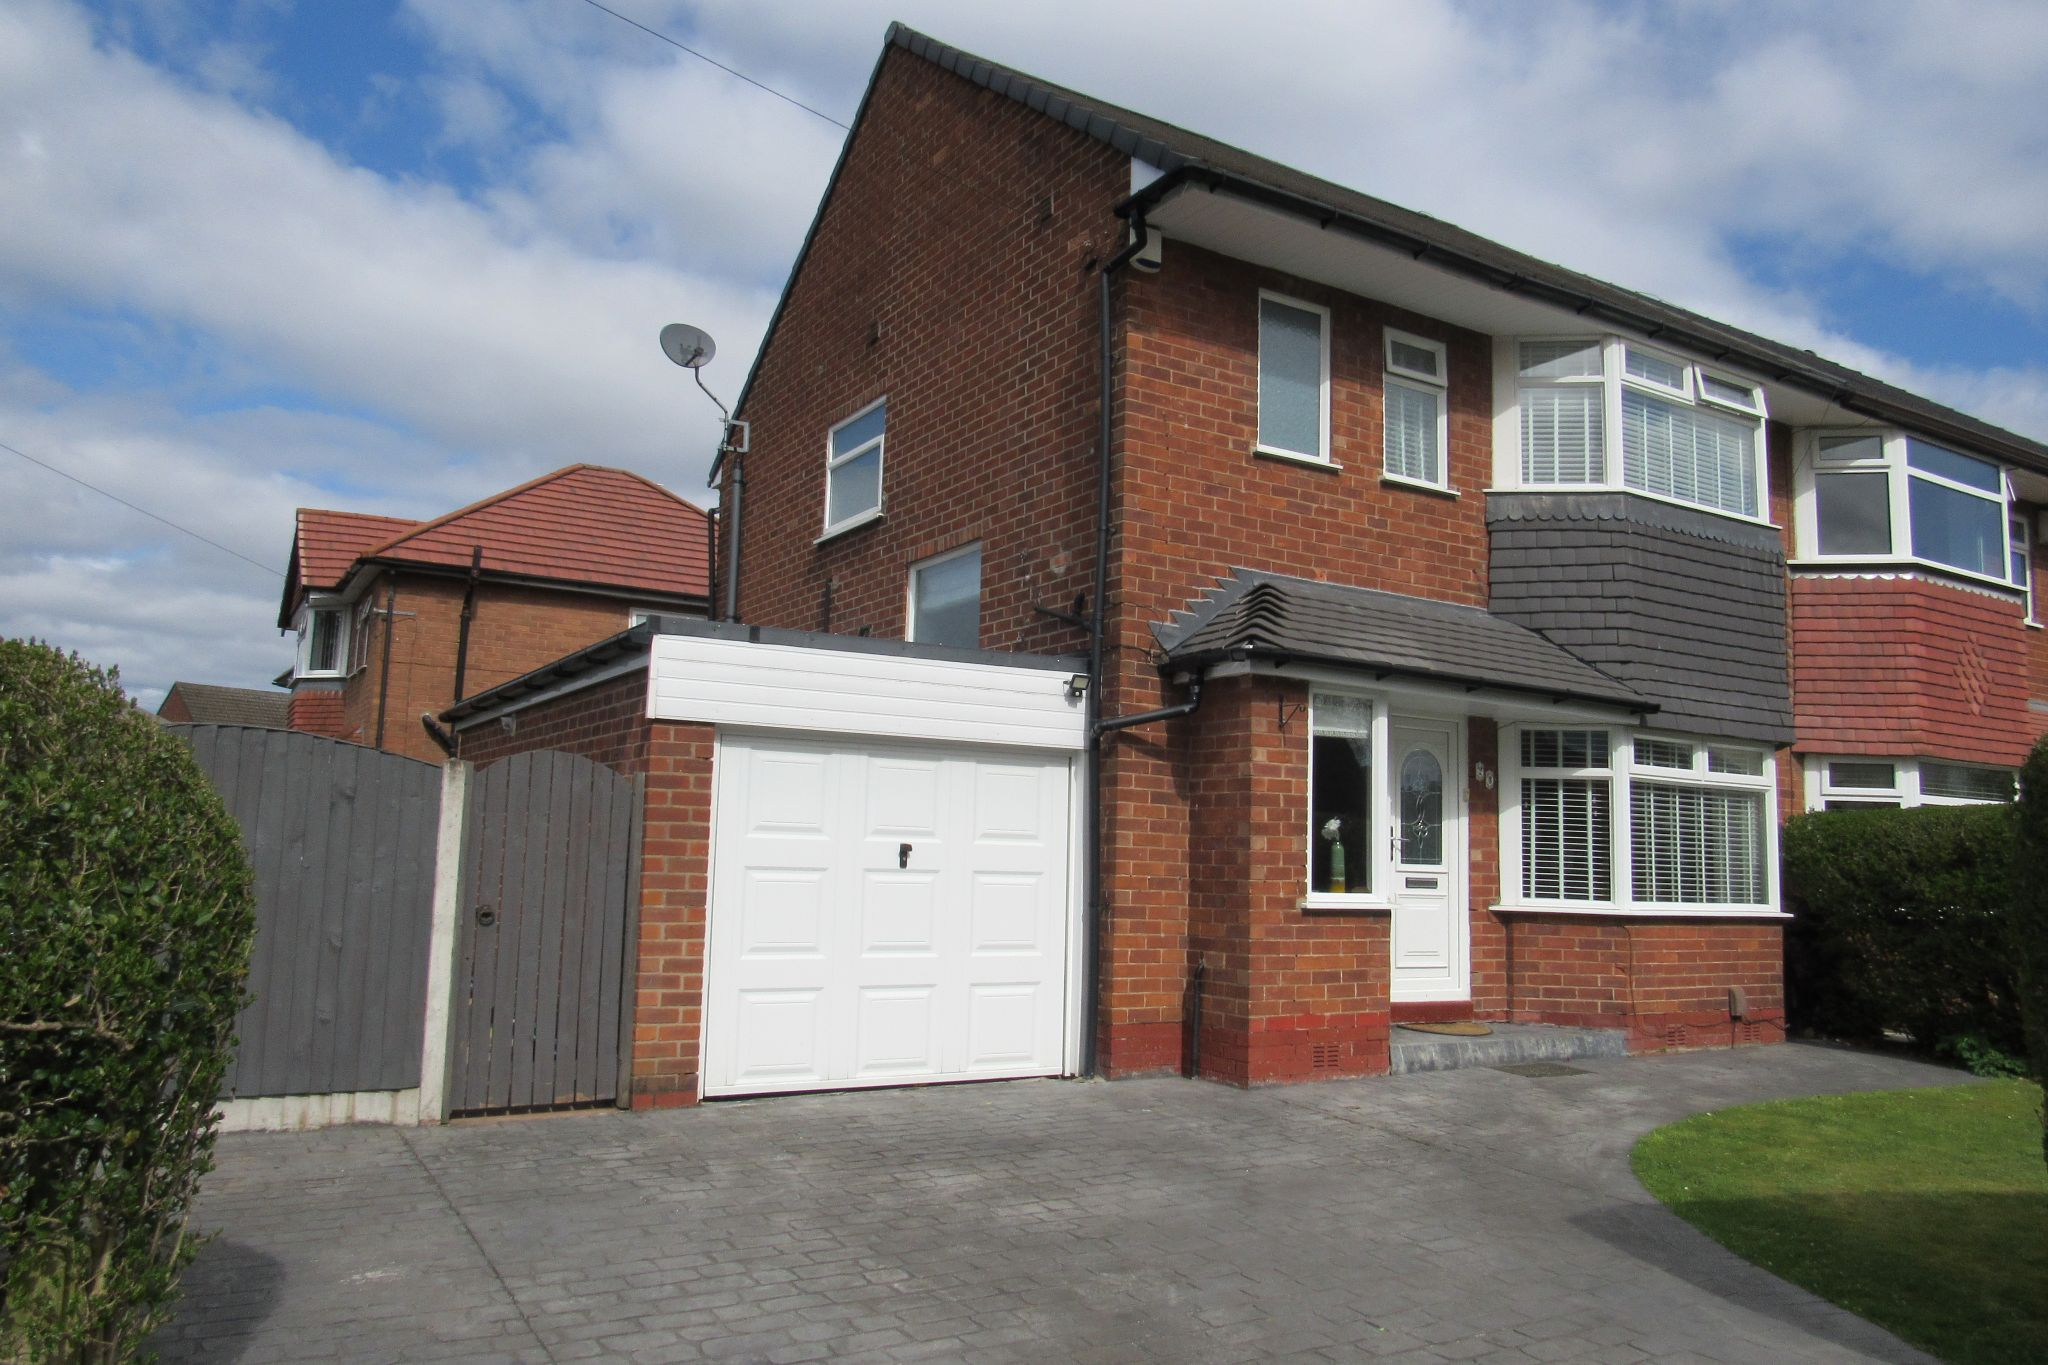 3 bedroom semi-detached house SSTC in Manchester - Photograph 38.